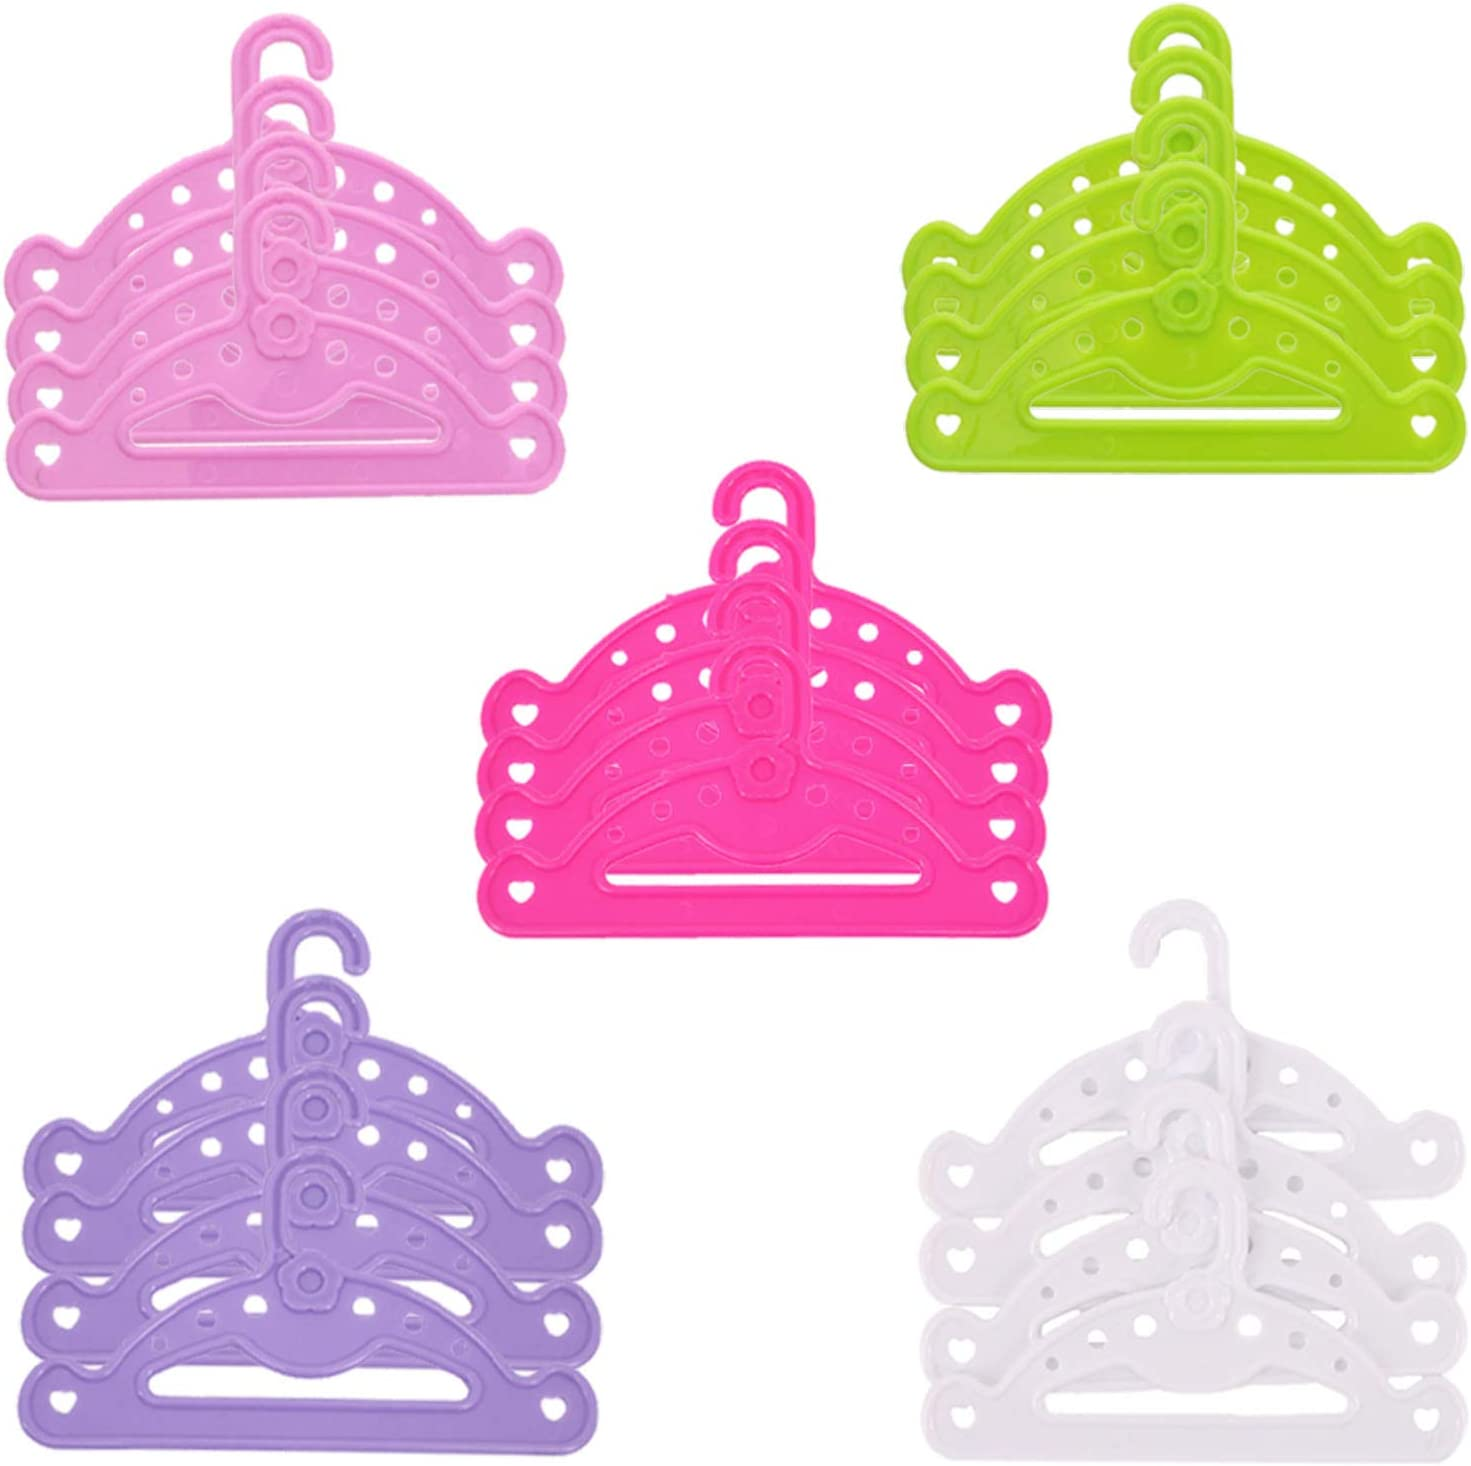 ZWSISU 20PCS Doll Clothes Hangers Set Dollhouse Furniture Accessories for 18 Inch American Girl Doll House Wardrobe Accessories 5colors